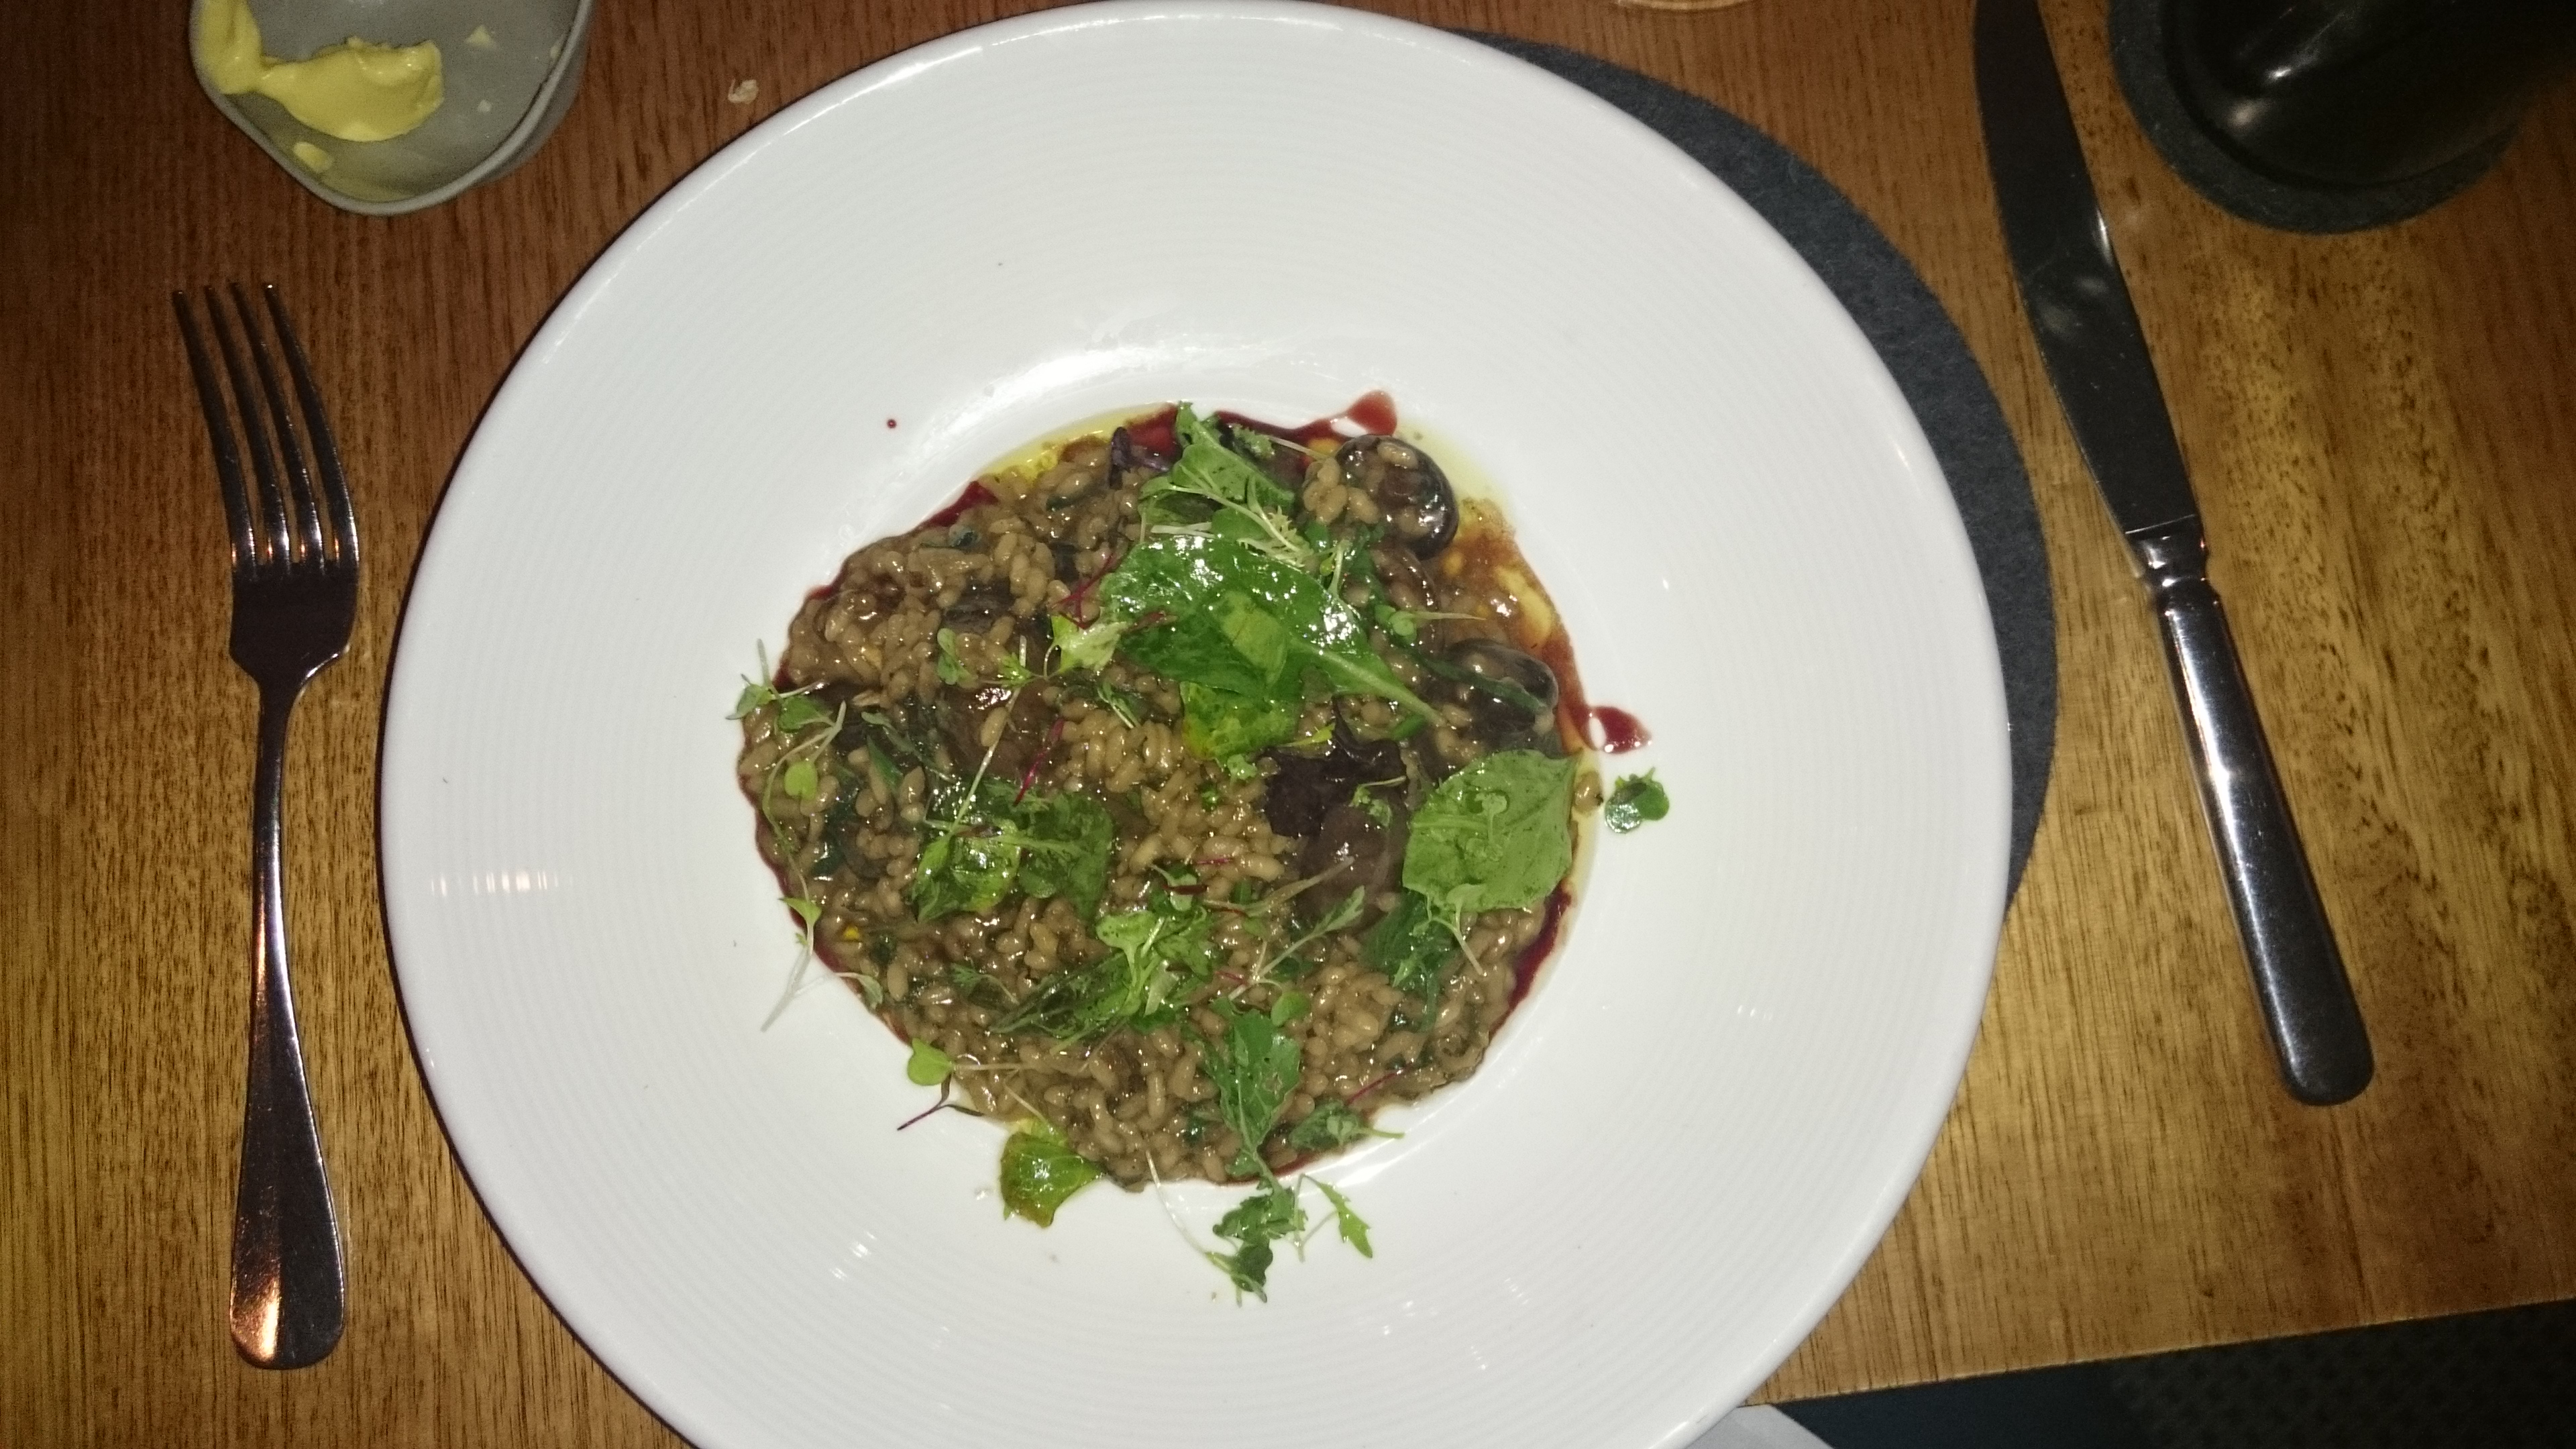 ... wild mushroom risotto with peas recipe yummly wild mushroom risotto